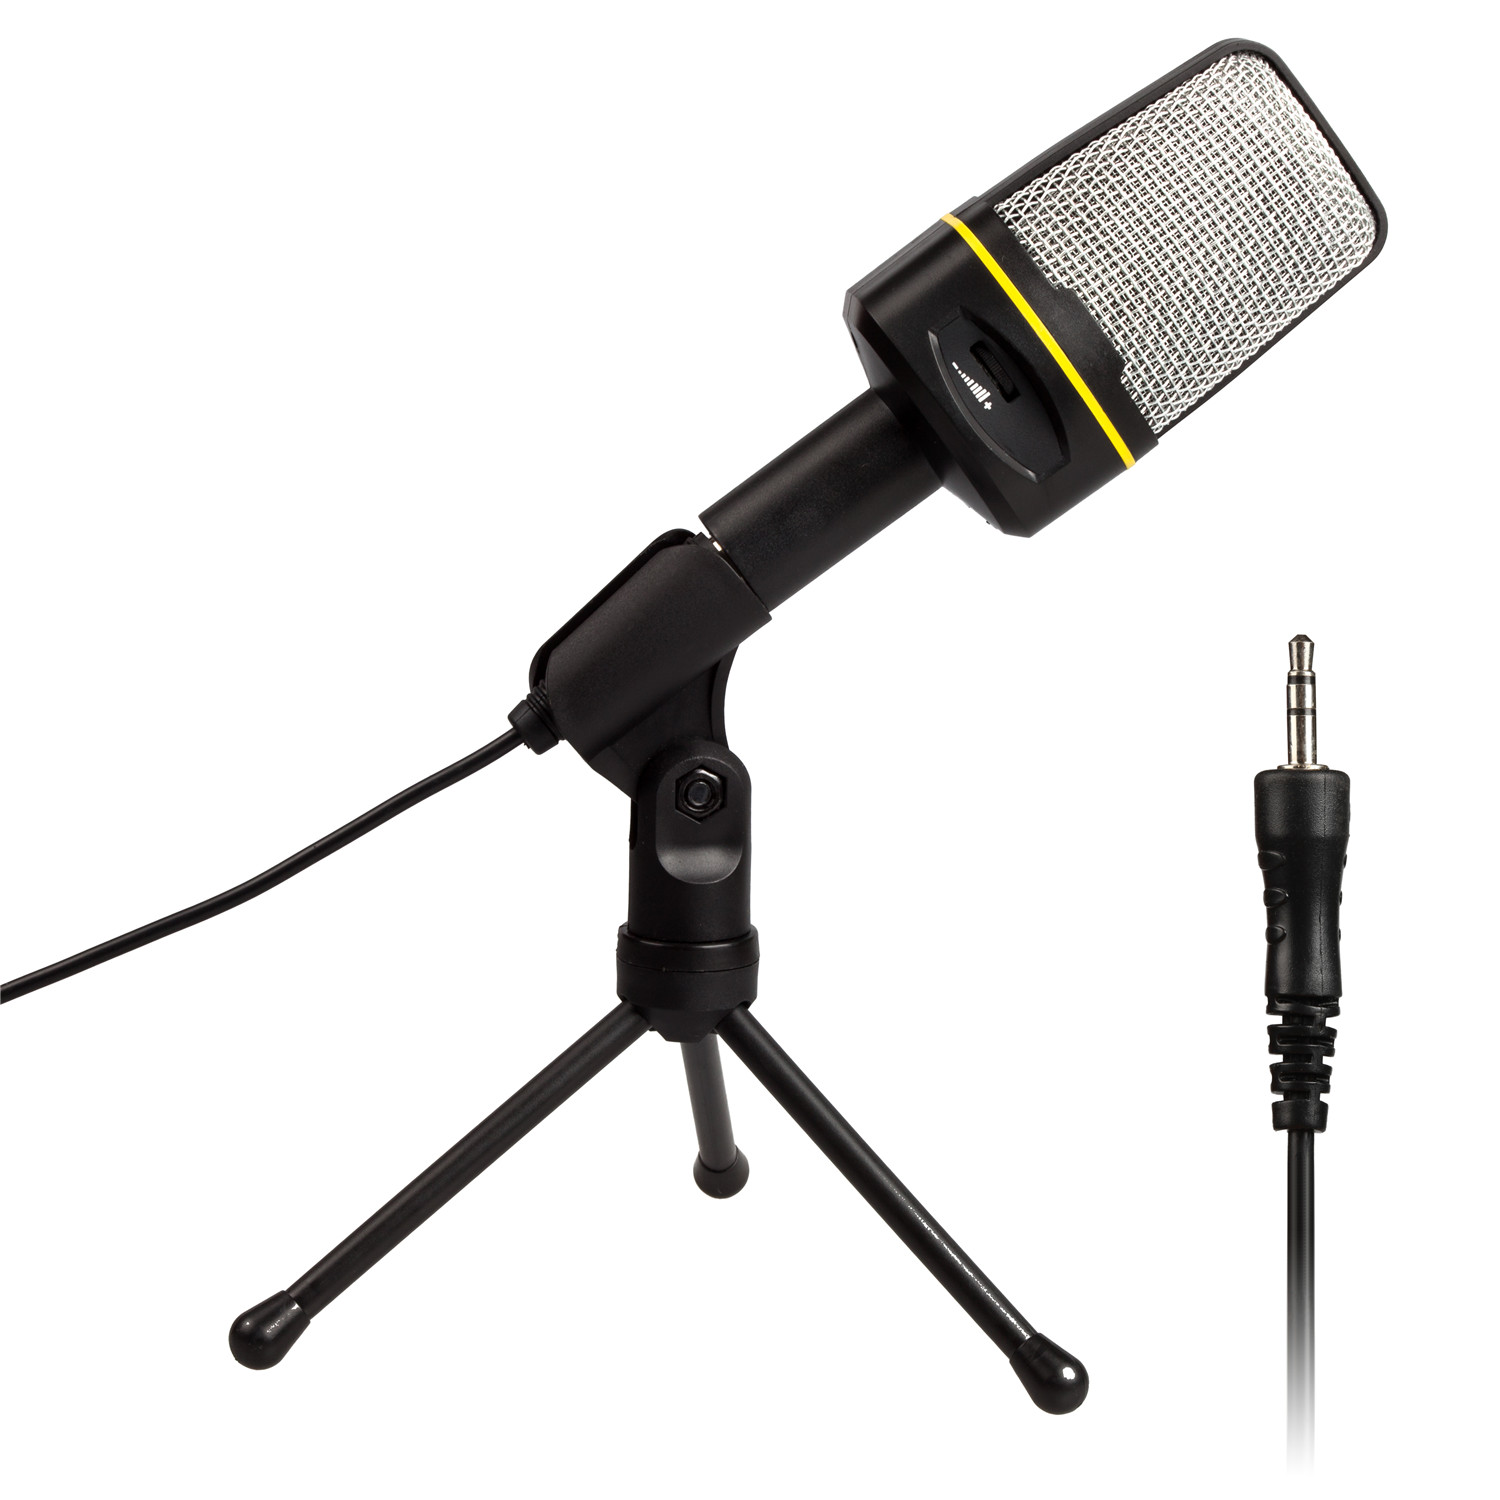 AGPTEK Professional 3.5mm Condenser Recording Microphone with USB Sound Card for YouTube, Skype, Google Voice Search